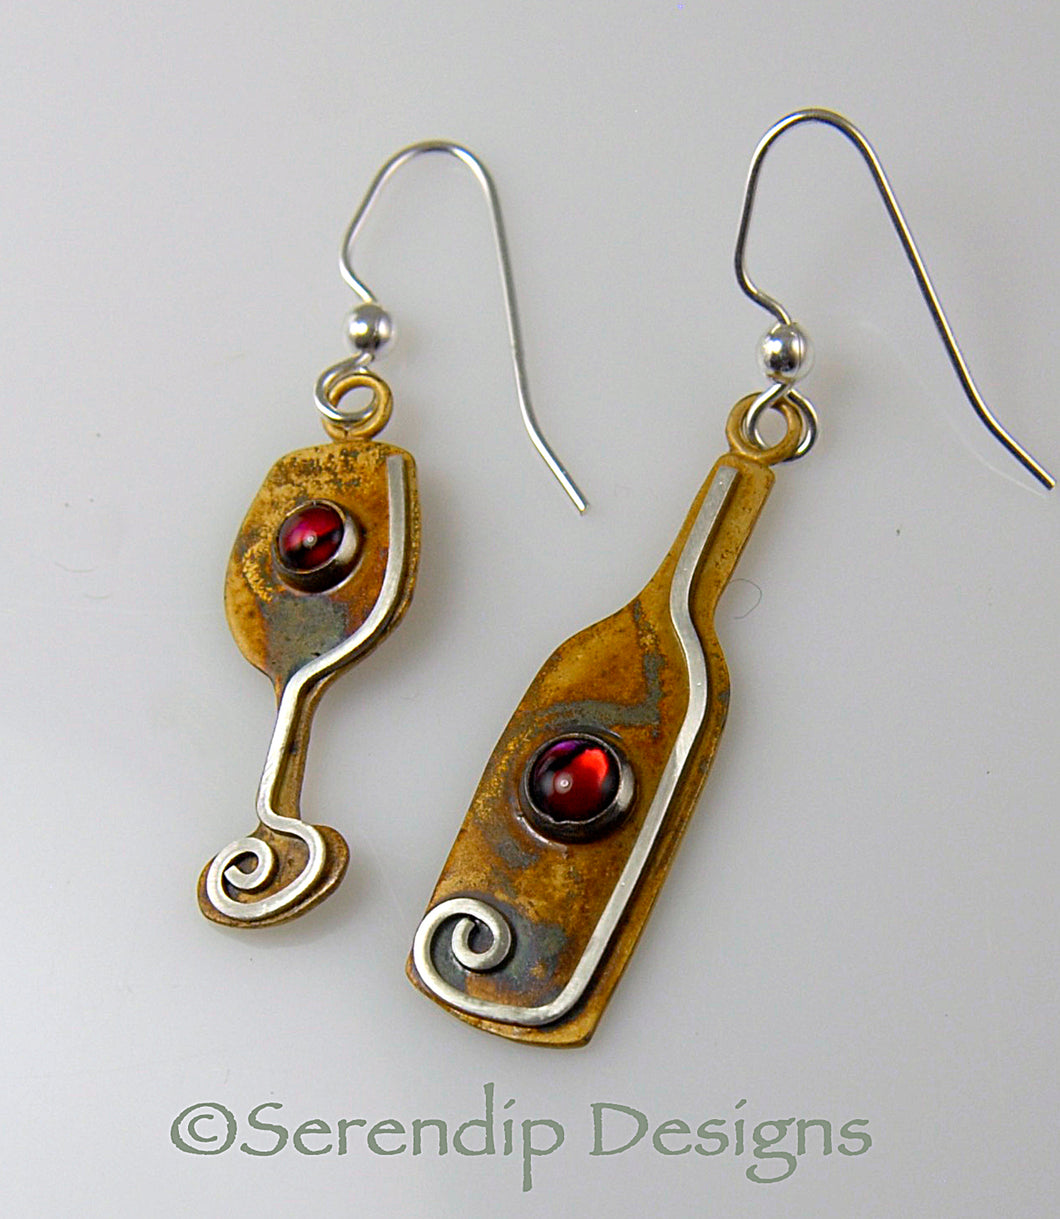 Wine Bottle and Glass Earrings in Patina Sterling Silver with Red Paua Shell Cabochons, BE3r, Lois Linn Jewelry